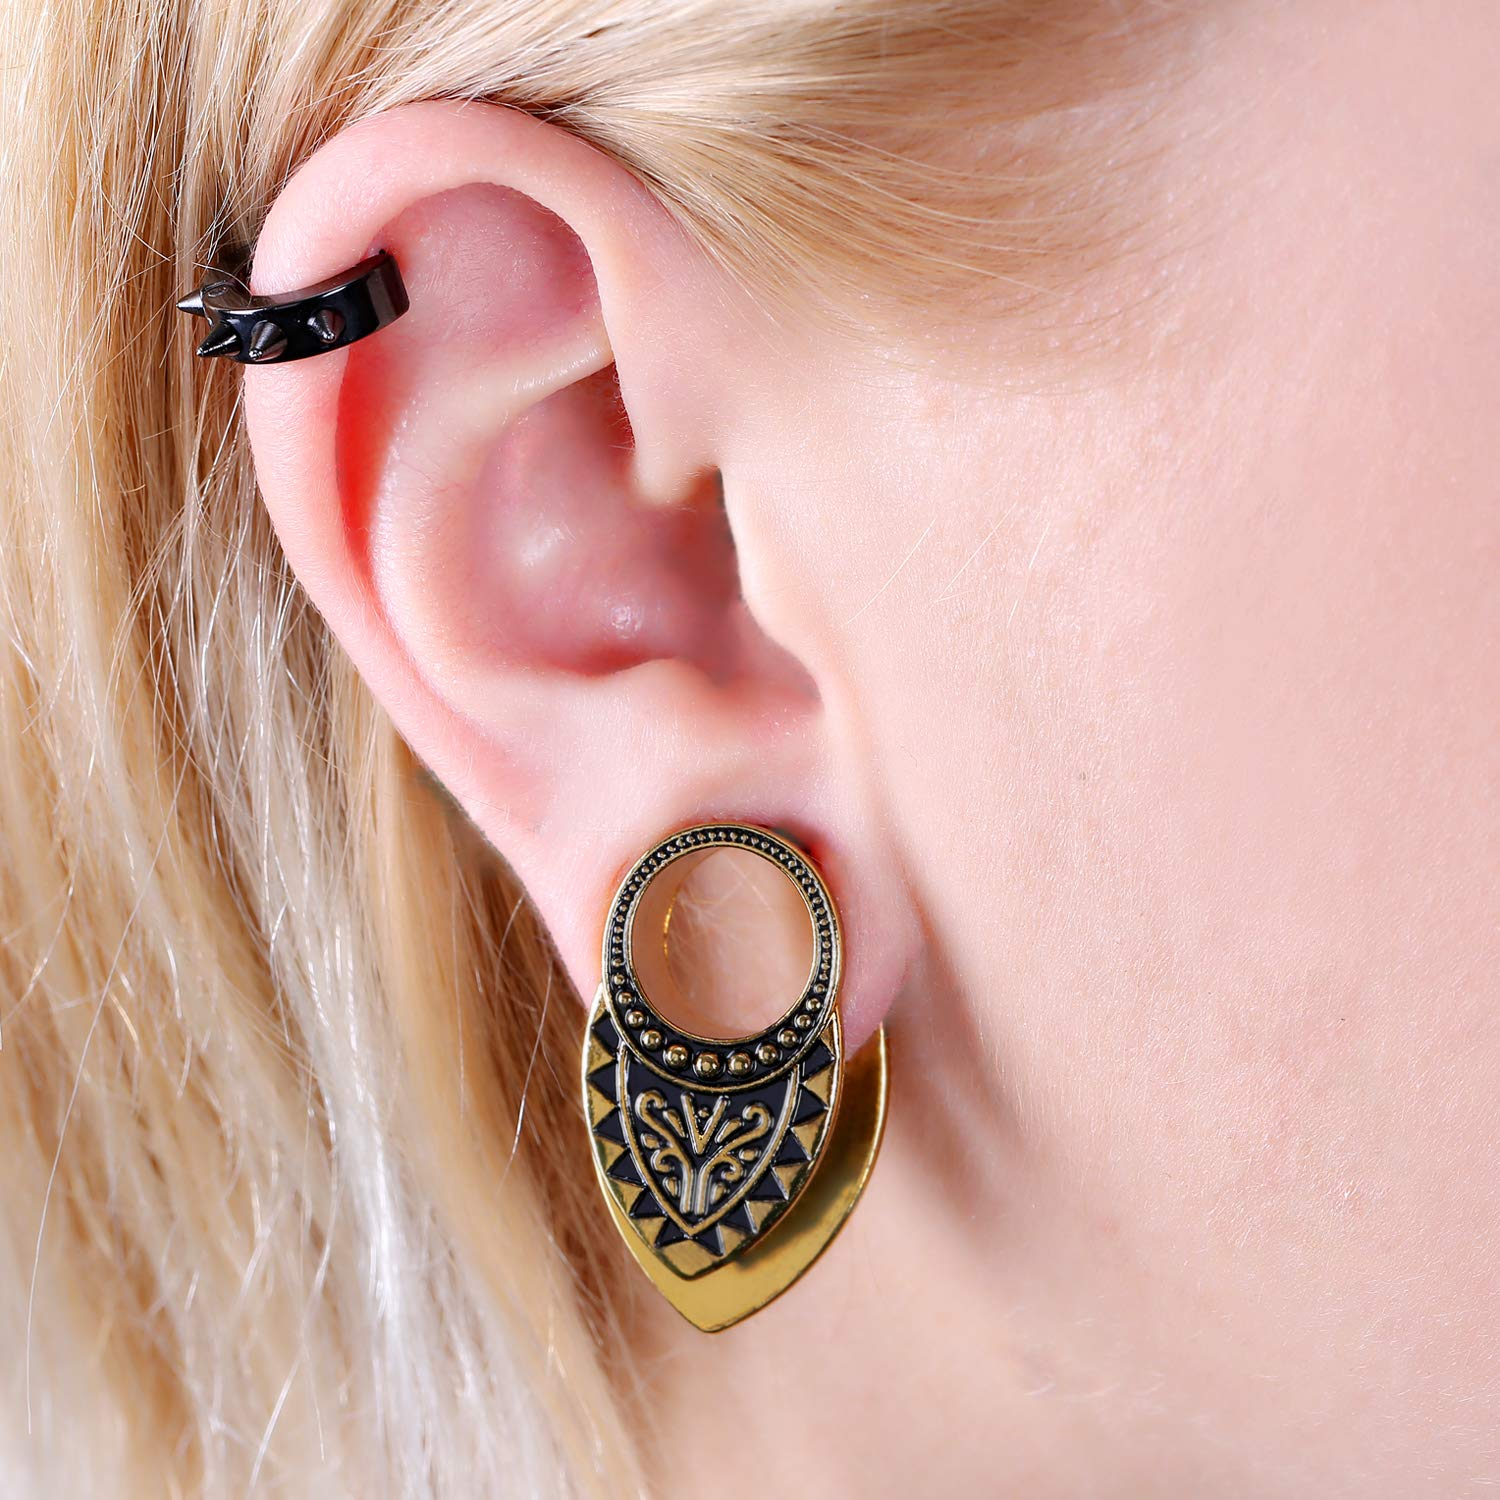 COOEAR Ear Gauges Screw Surgical Steel Plugs Flesh Stretchers Earrings Size 2g to 30mm Colorful Tunnels.